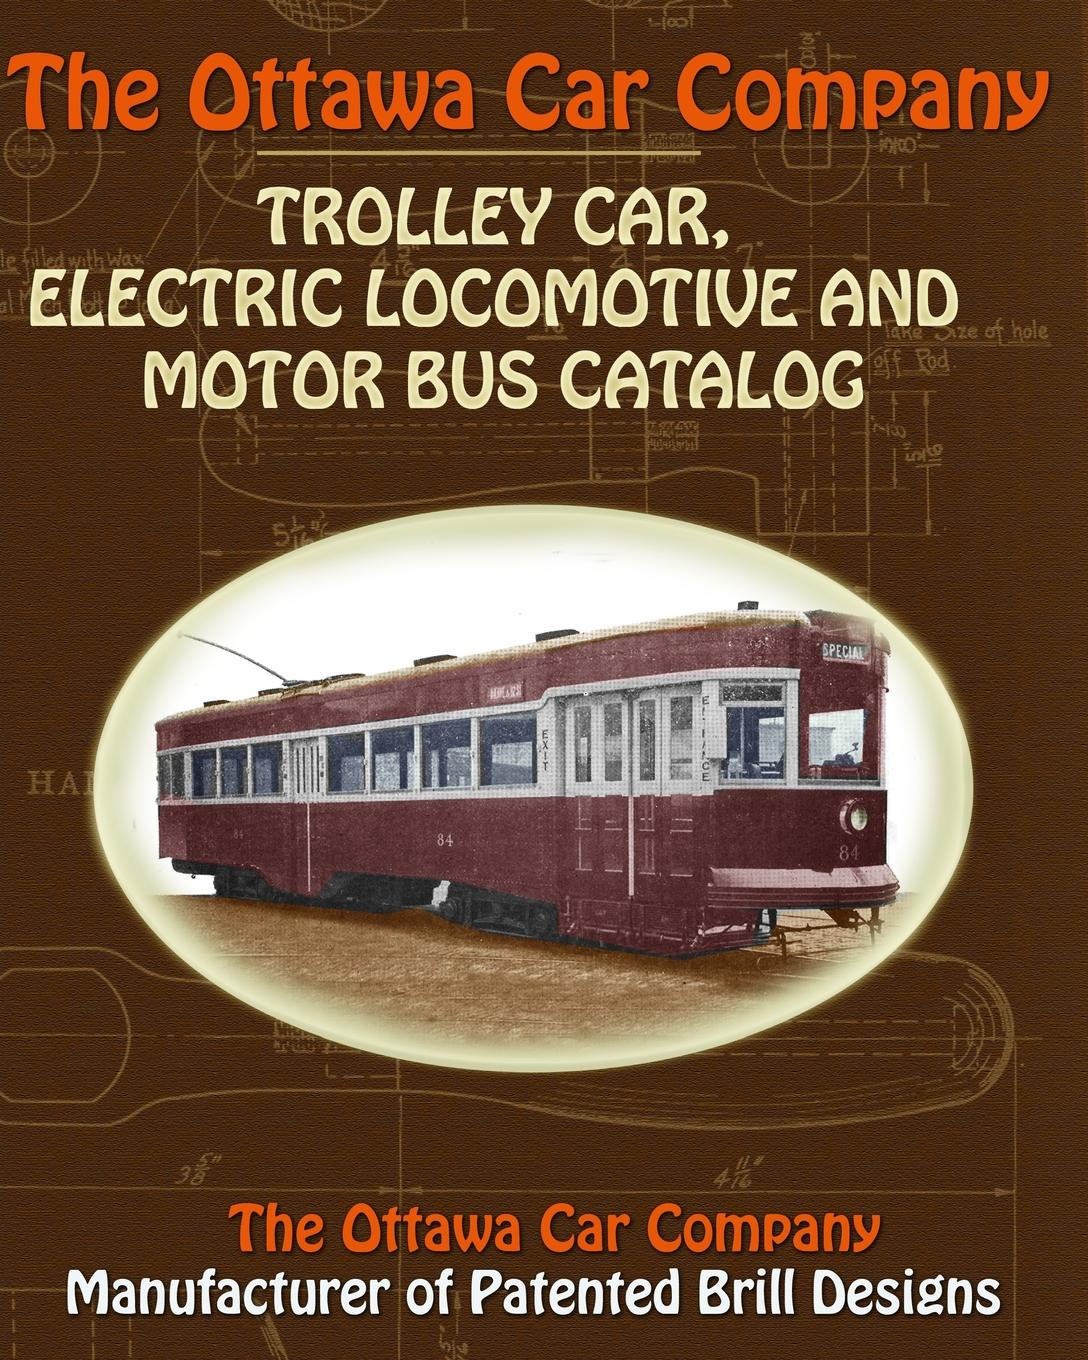 The Ottawa Car Company The Ottawa Car Company Trolley Car, Electric Locomotive and Motor Bus Catalog недорго, оригинальная цена